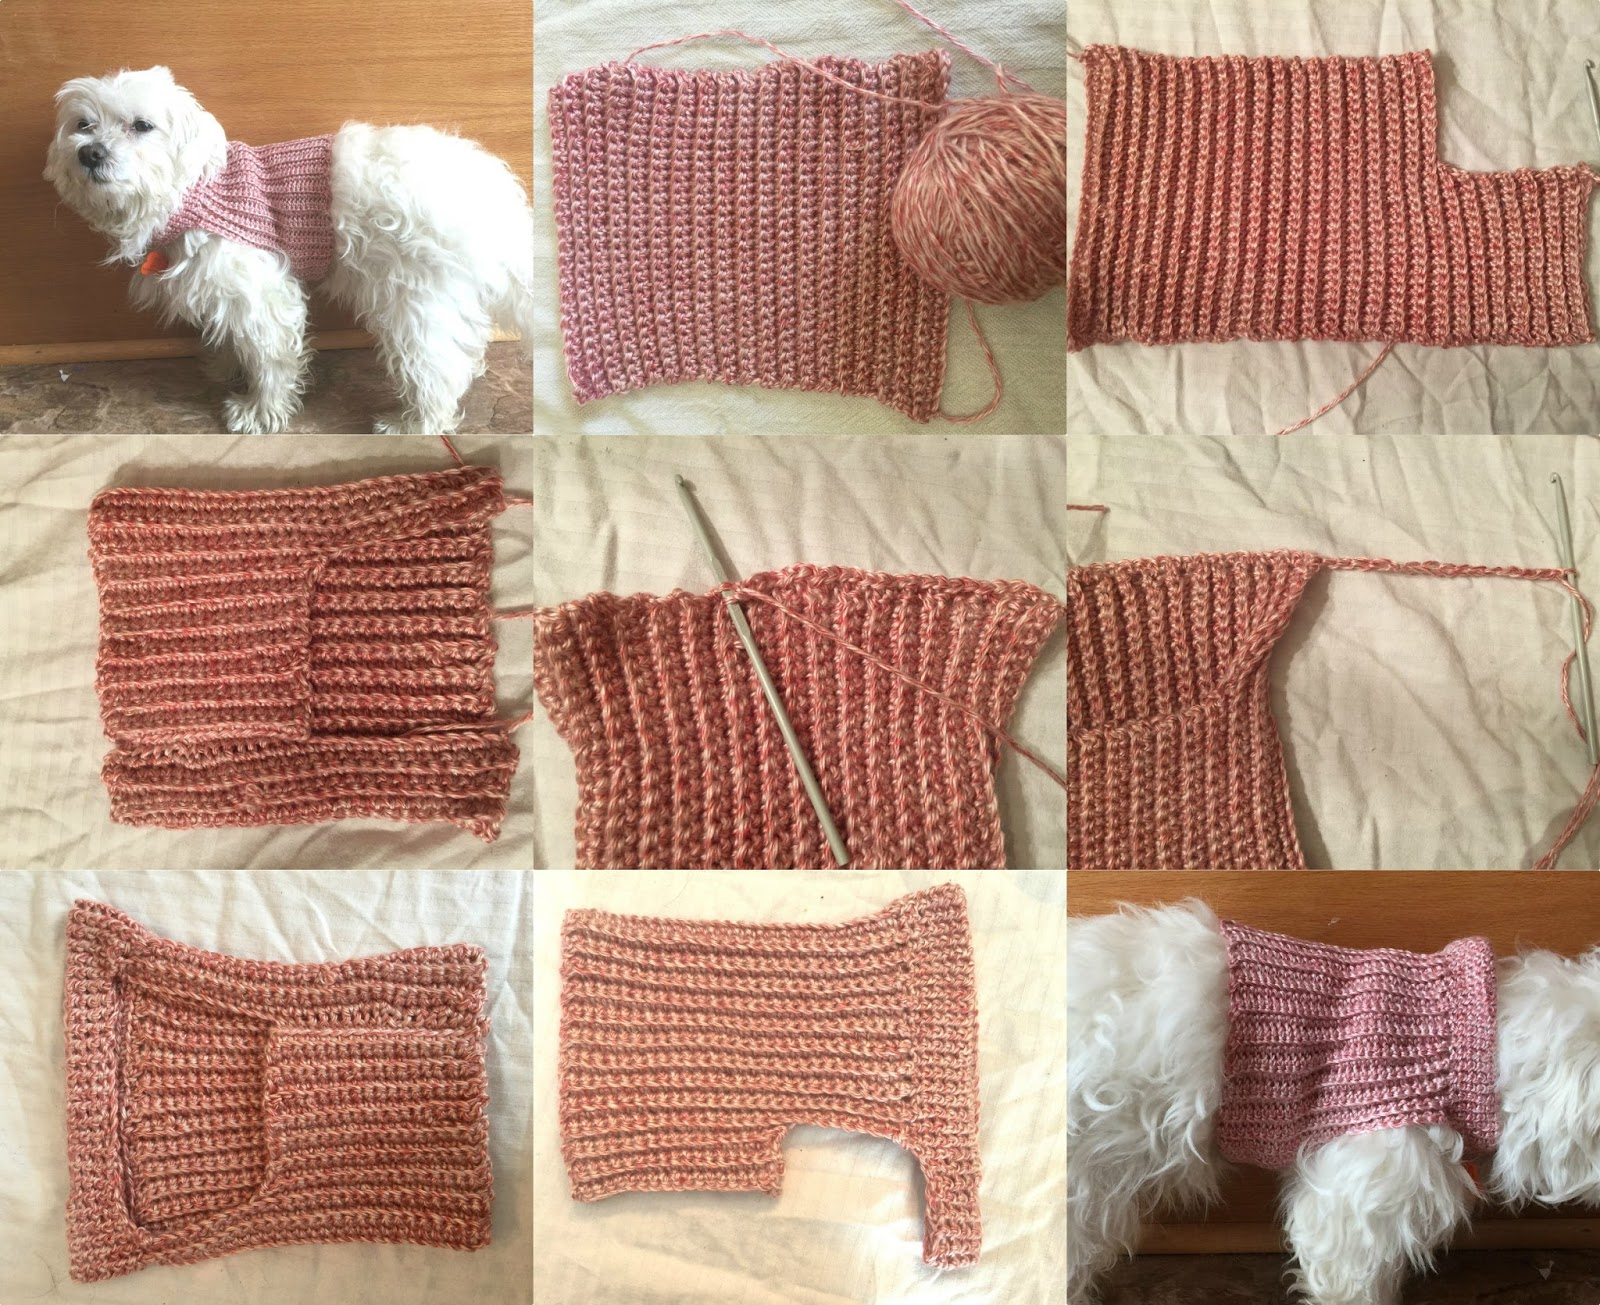 Easy Knitting Pattern For Dog Coat Knitting Patterns For Min Pin Dog Sweaters